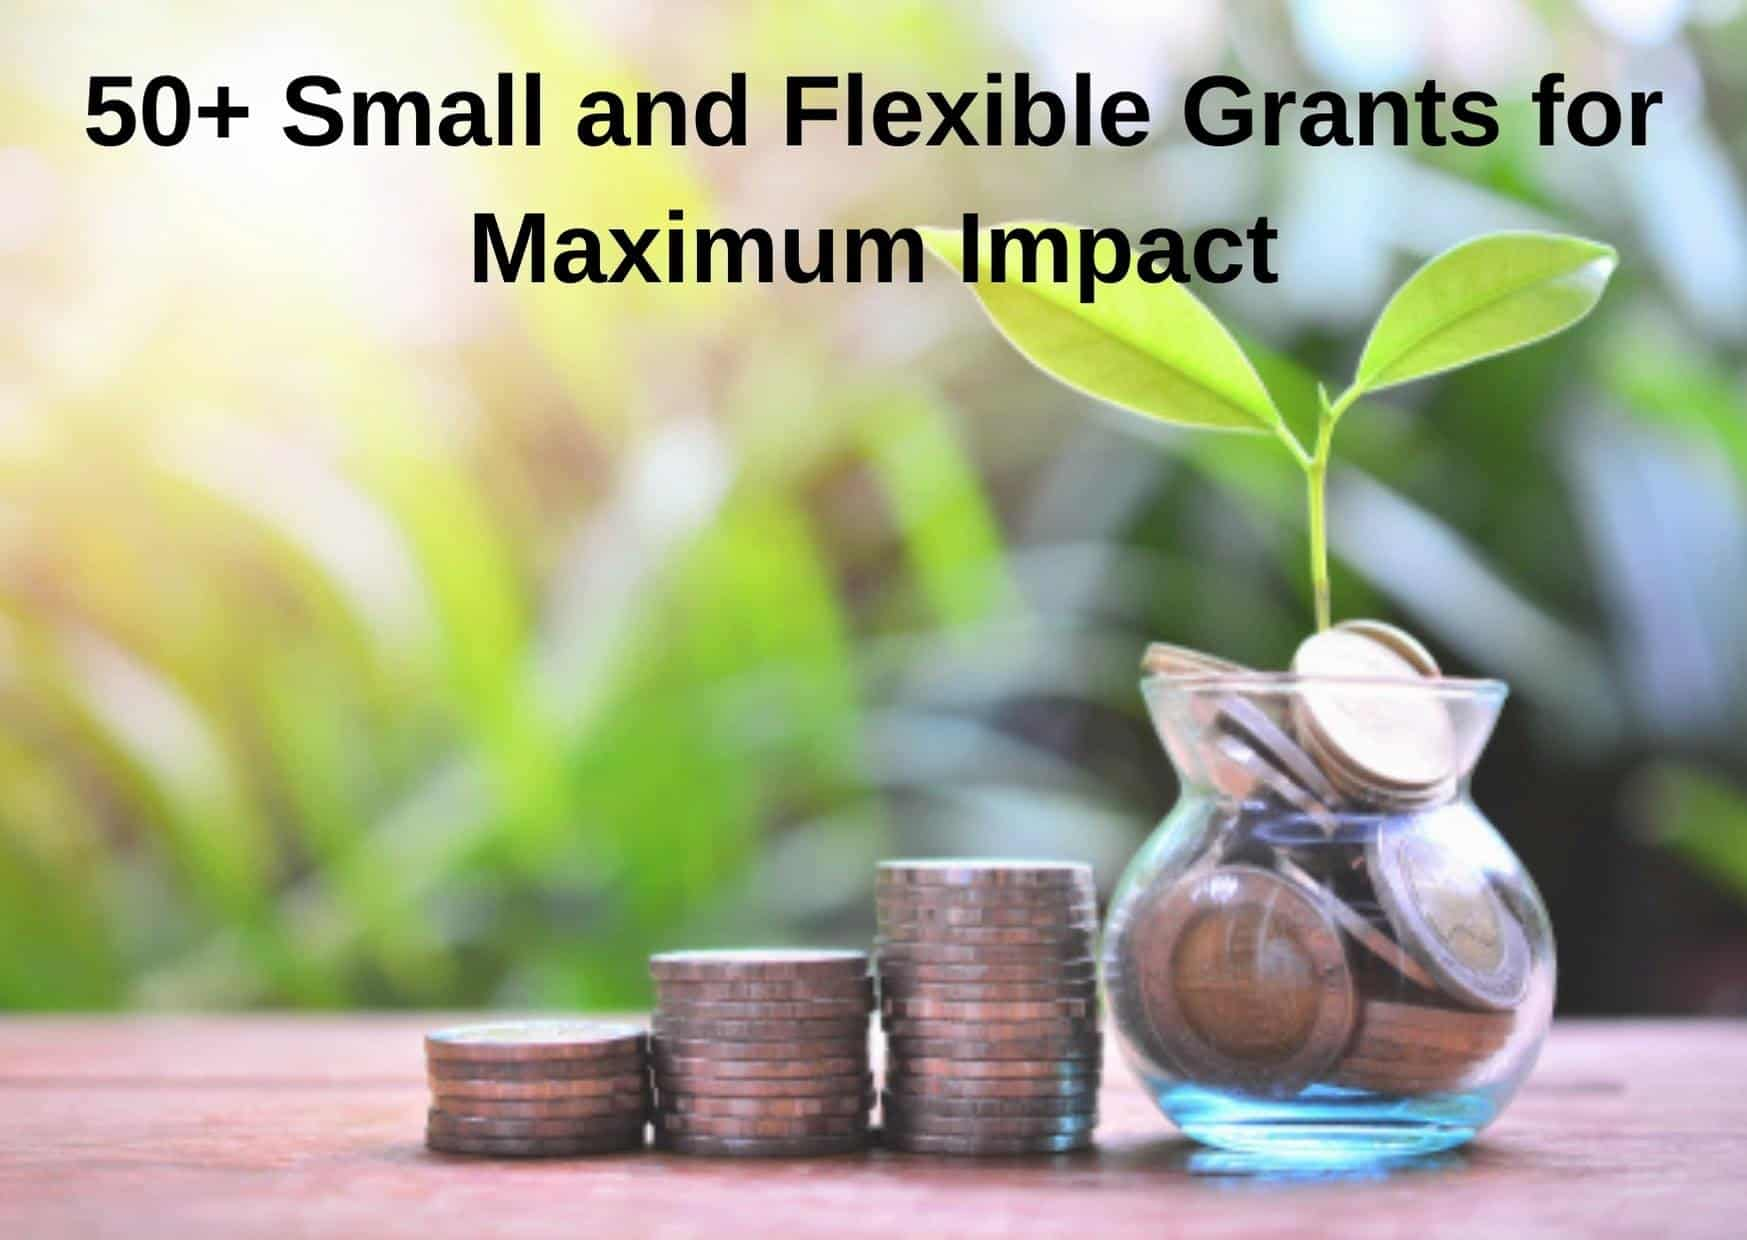 50+ Small and Flexible Grants for Maximum Impact